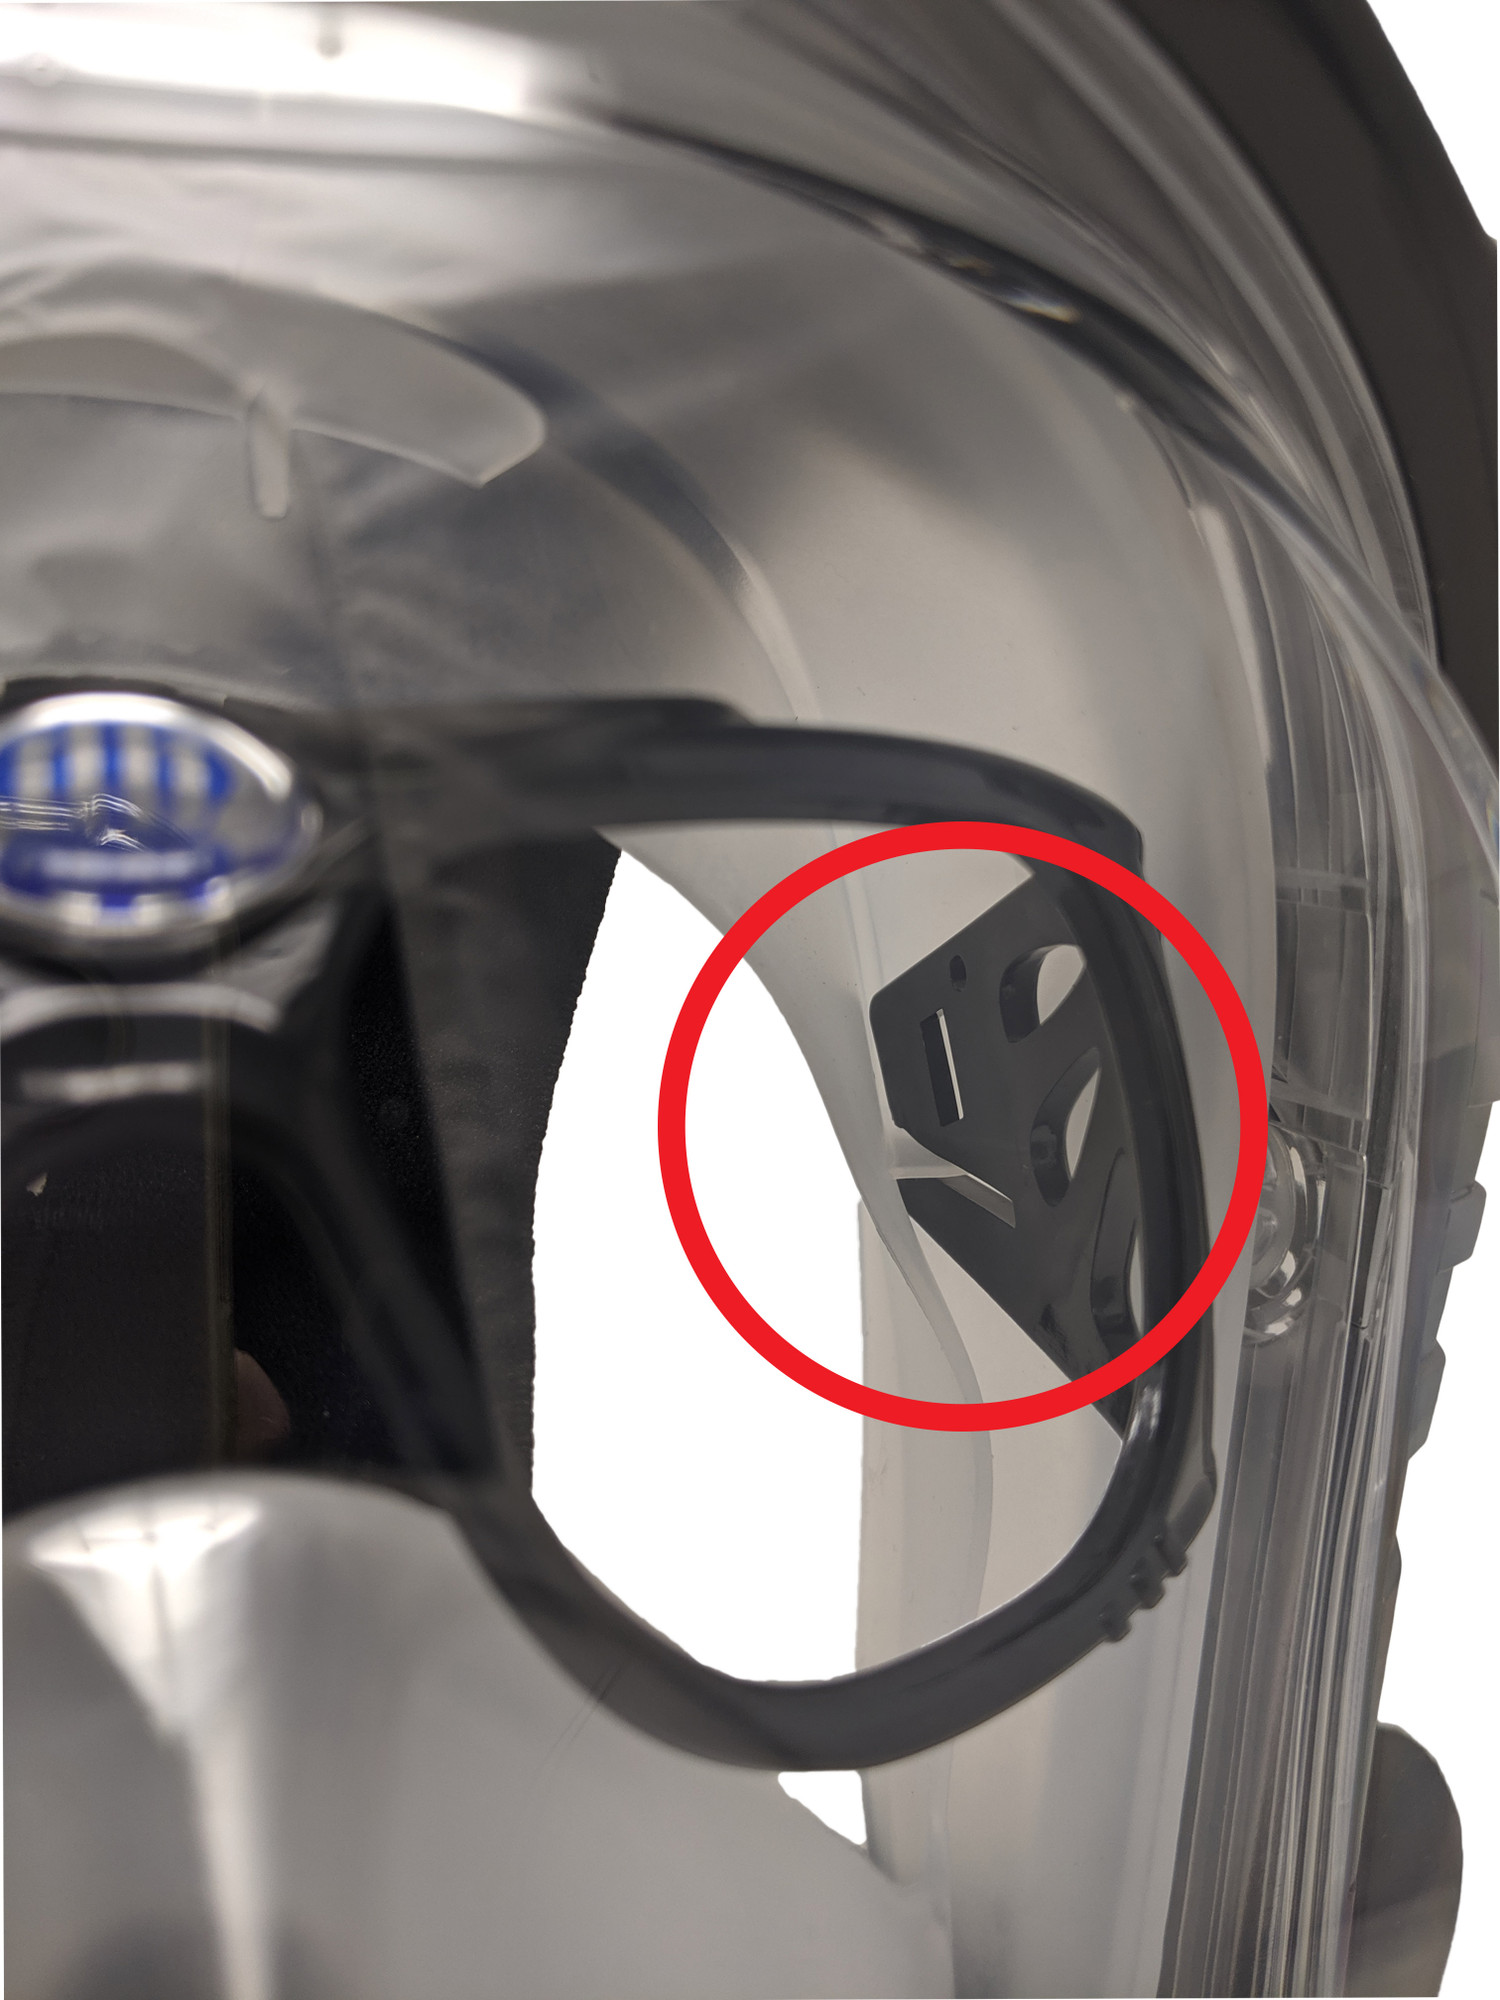 If your full face mask has these tabs on the inside of the skirt, this Frame should work well with your mask!